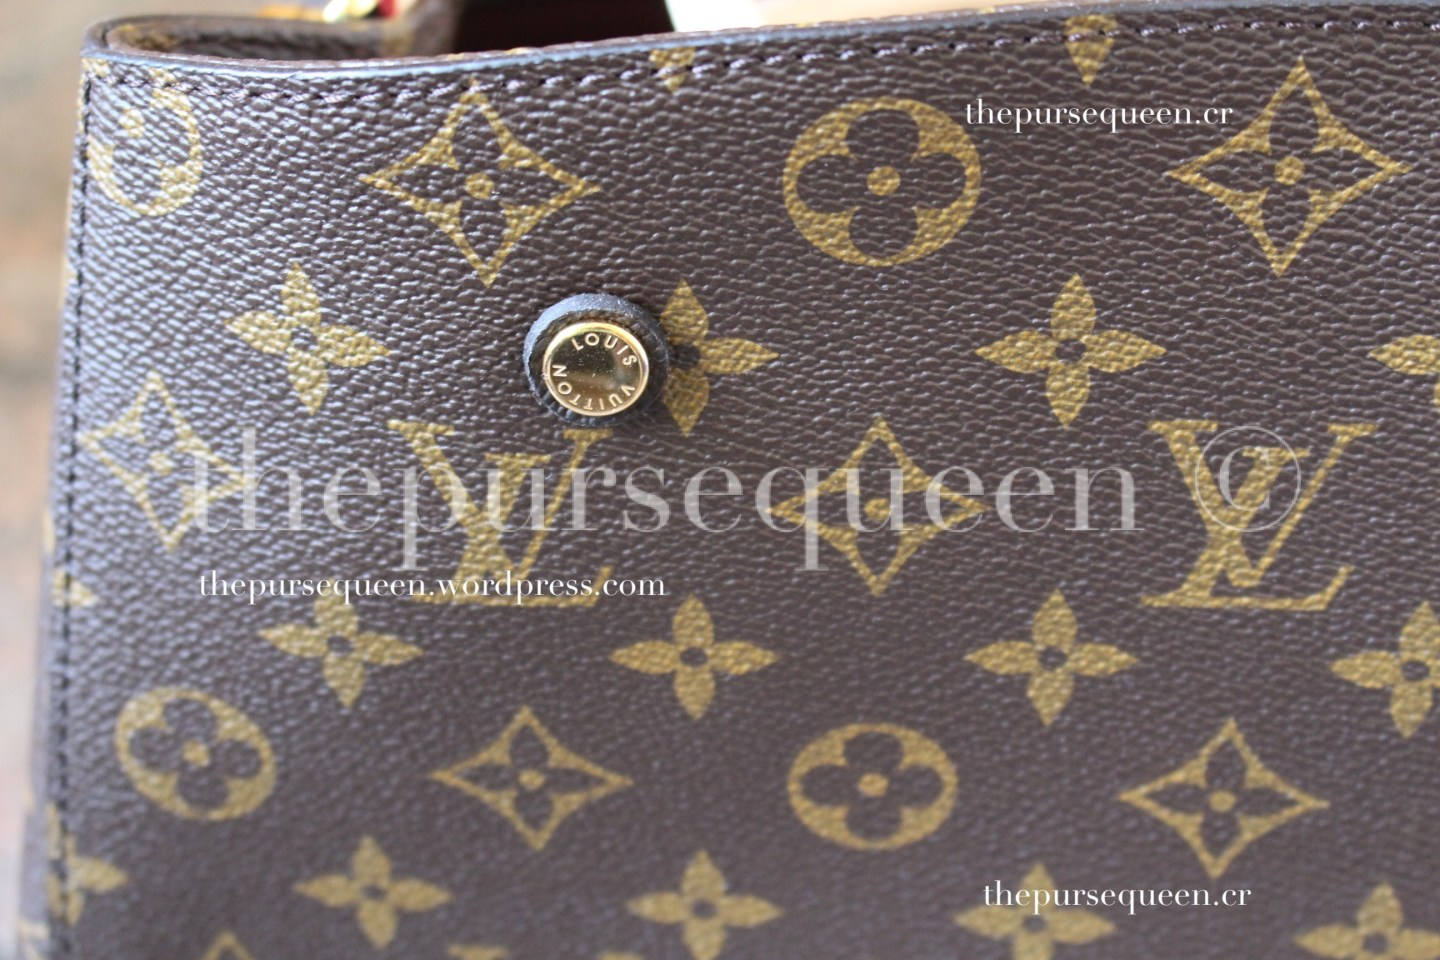 louis vuitton montaigne replica #replicabag #replicabags closeup